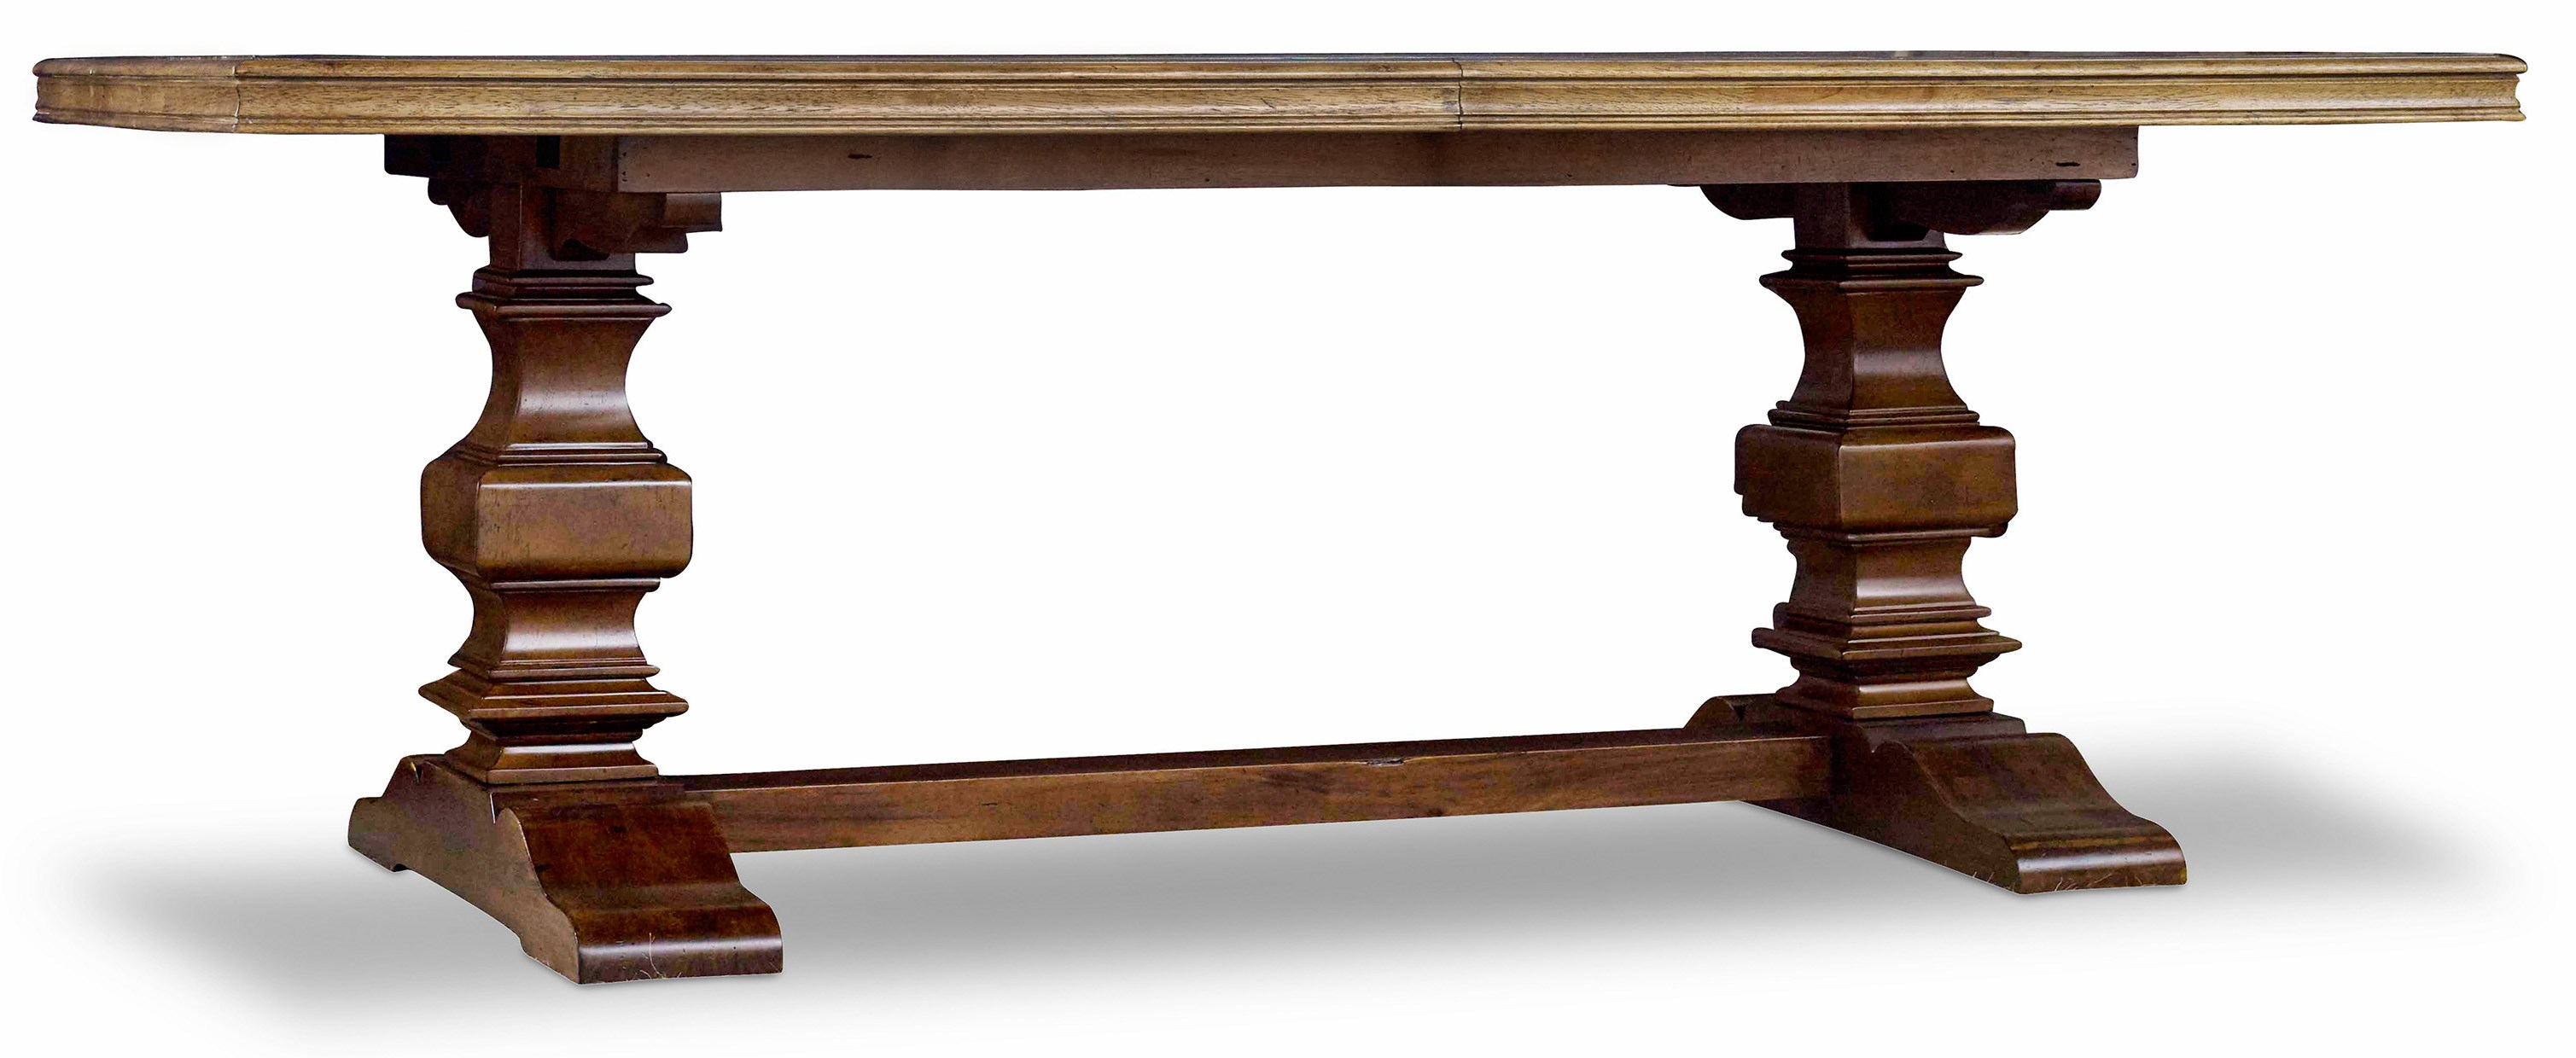 Hooker Furniture Archivist Trestle Table with 2 18quot Leaves  : products2Fhookerfurniture2Fcolor2Farchivist 5060752035447 75206 toffee b1jpgscalebothampwidth500ampheight500ampfsharpen25ampdown from www.storyandlee.com size 500 x 500 jpeg 19kB